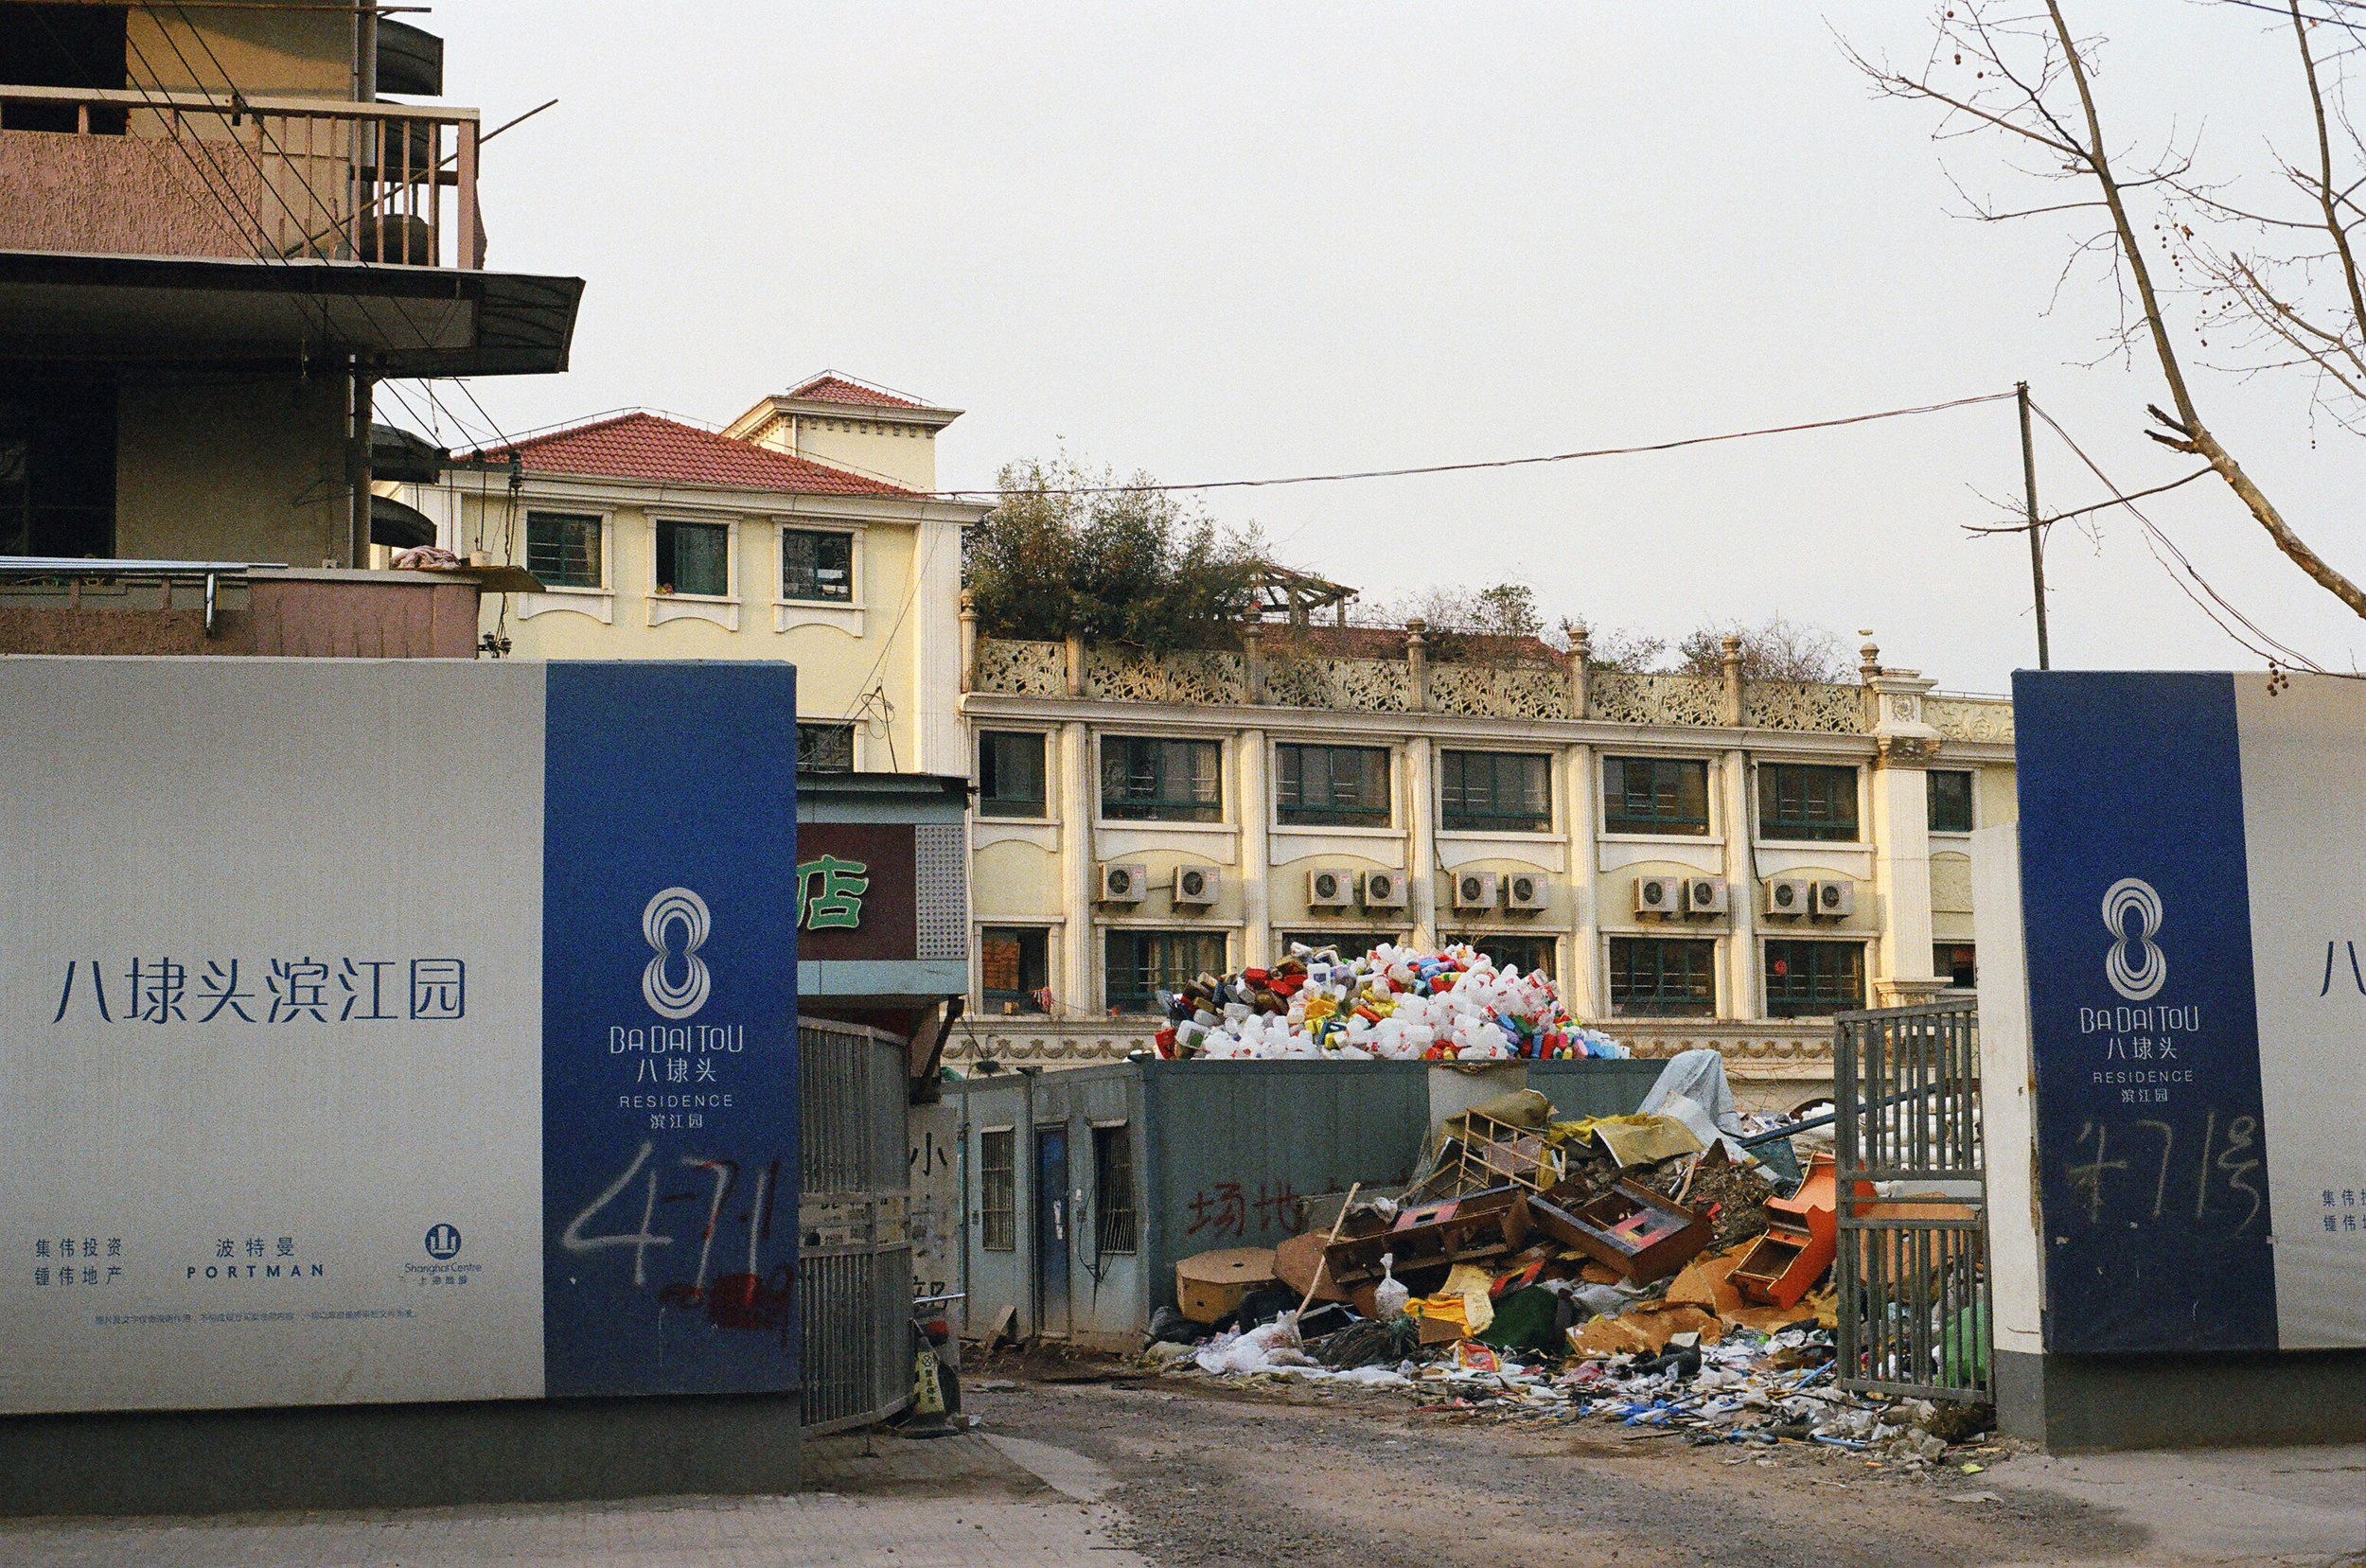 yangpu district, shanghai, 2018. the new real-estate commercial, old building, trash.